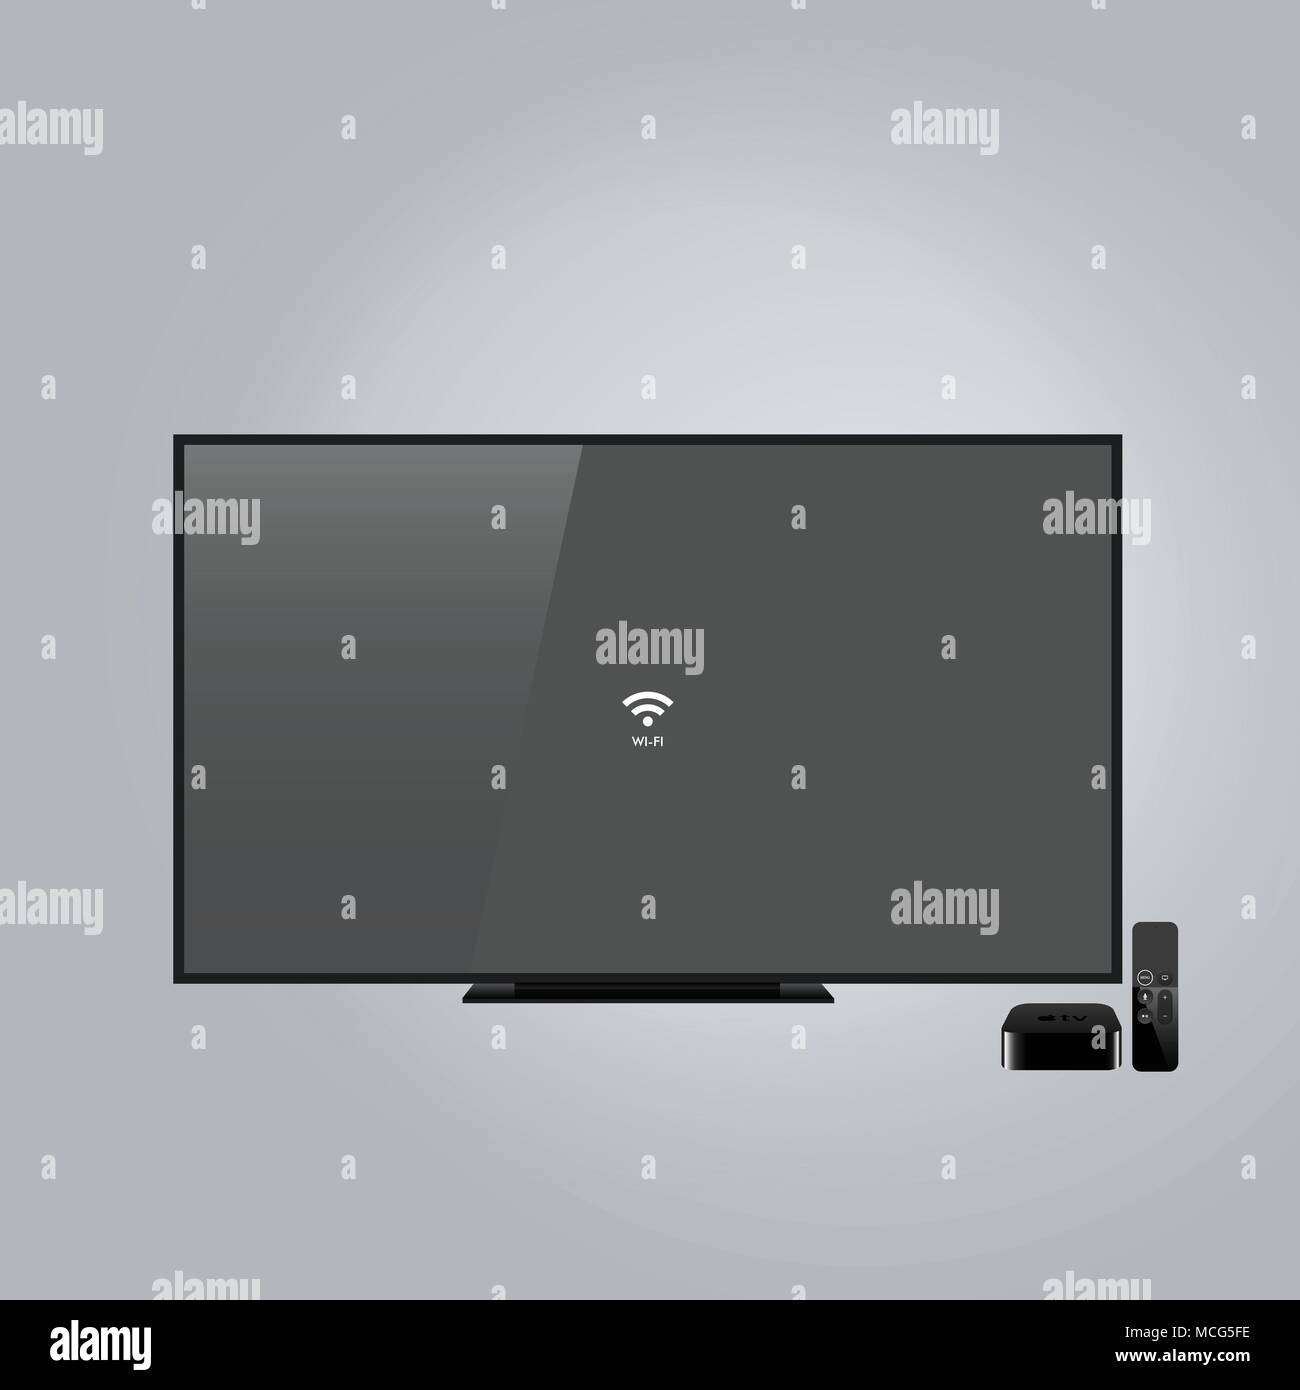 Wide screen black television, apple TV set isolated on gray background - Stock Image